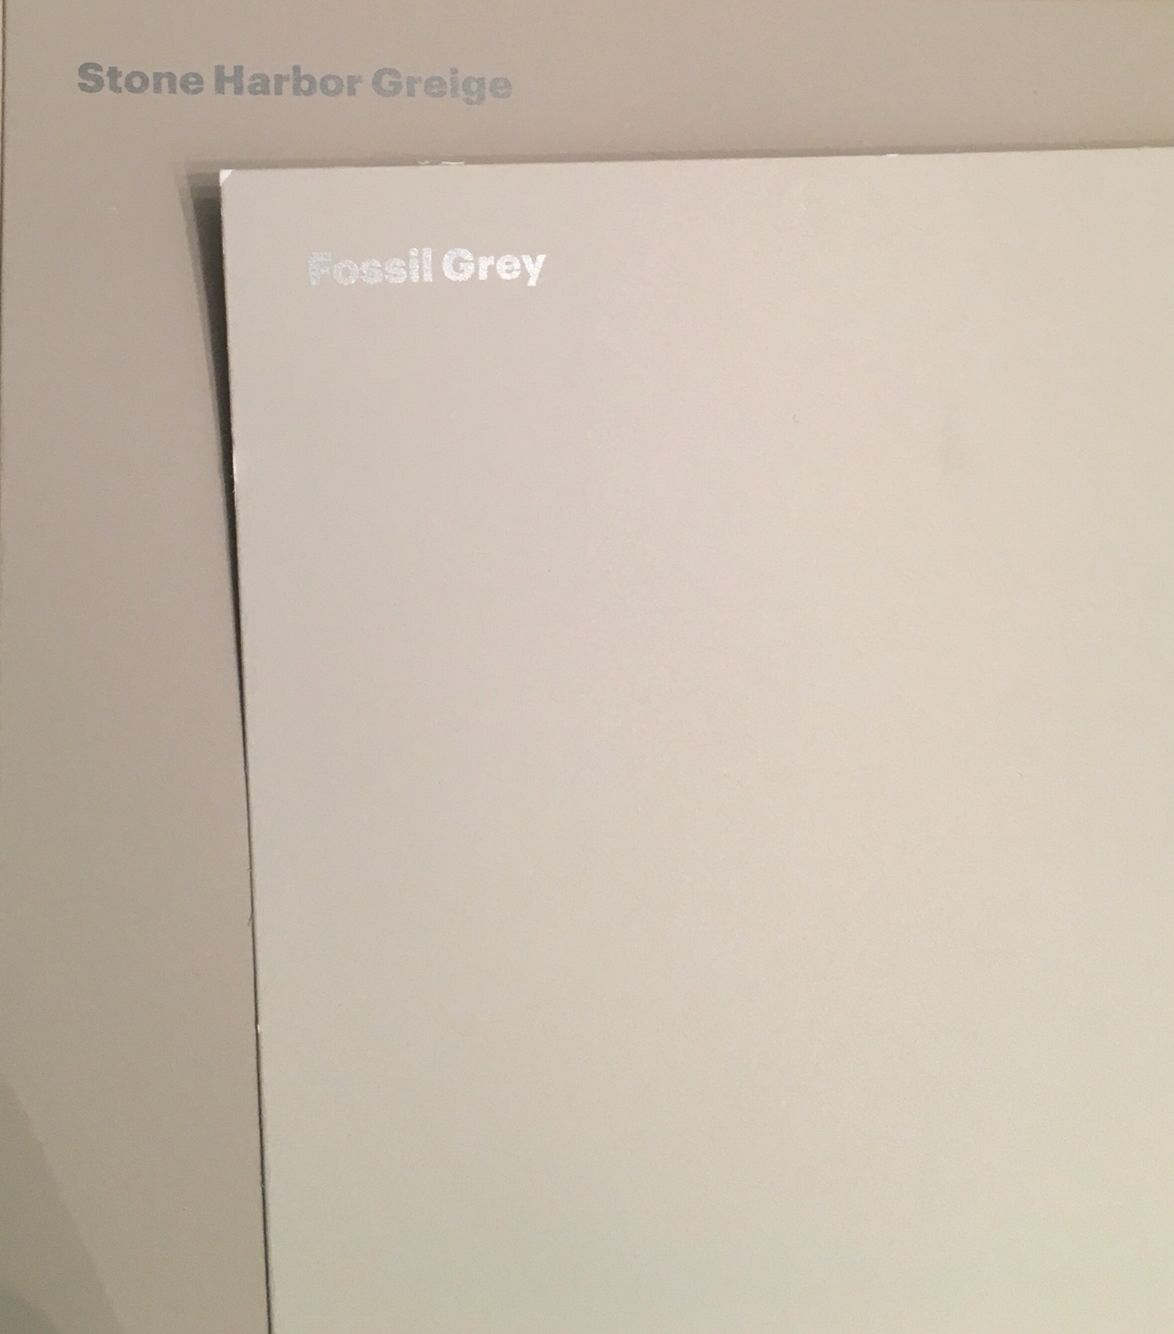 Glidden From Fossil Grey Wn36 30yy 56 060